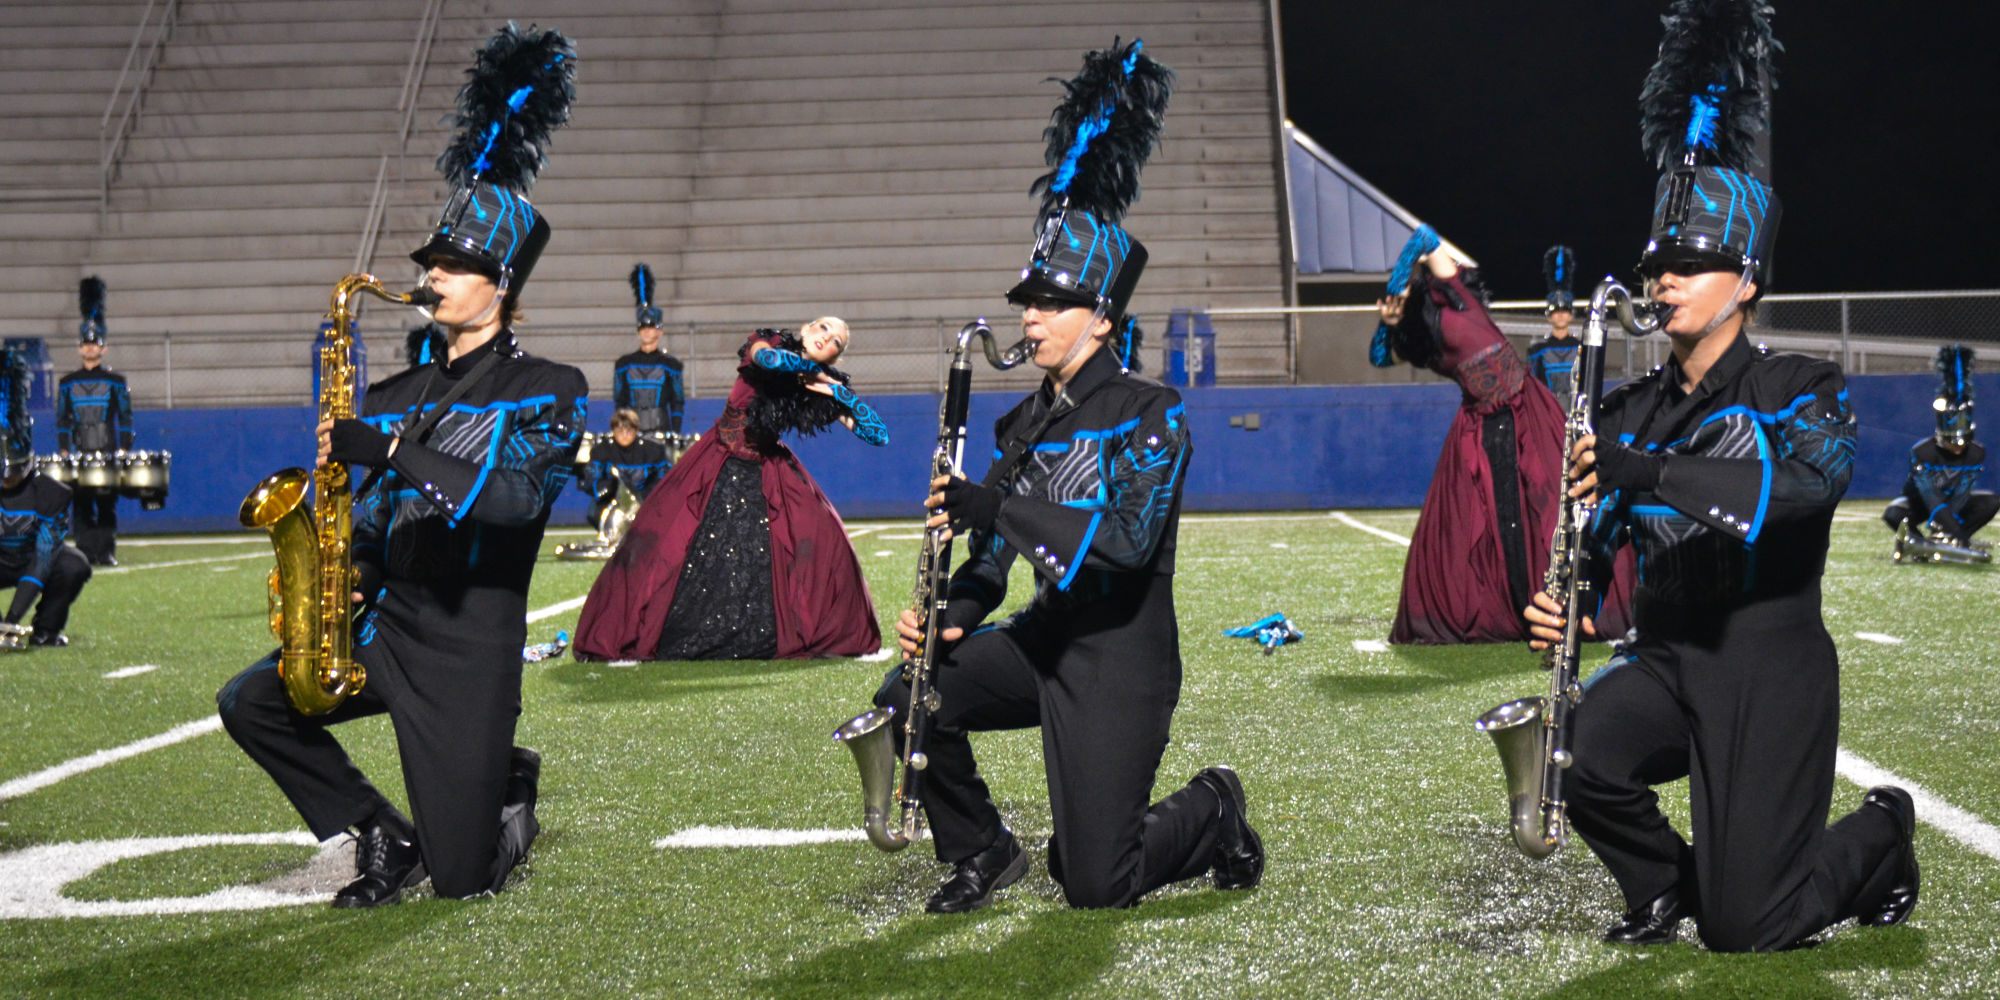 Cobb Musicians March Into Annual Band Exhibition at McEachern High School on October 9 & 16, 2017